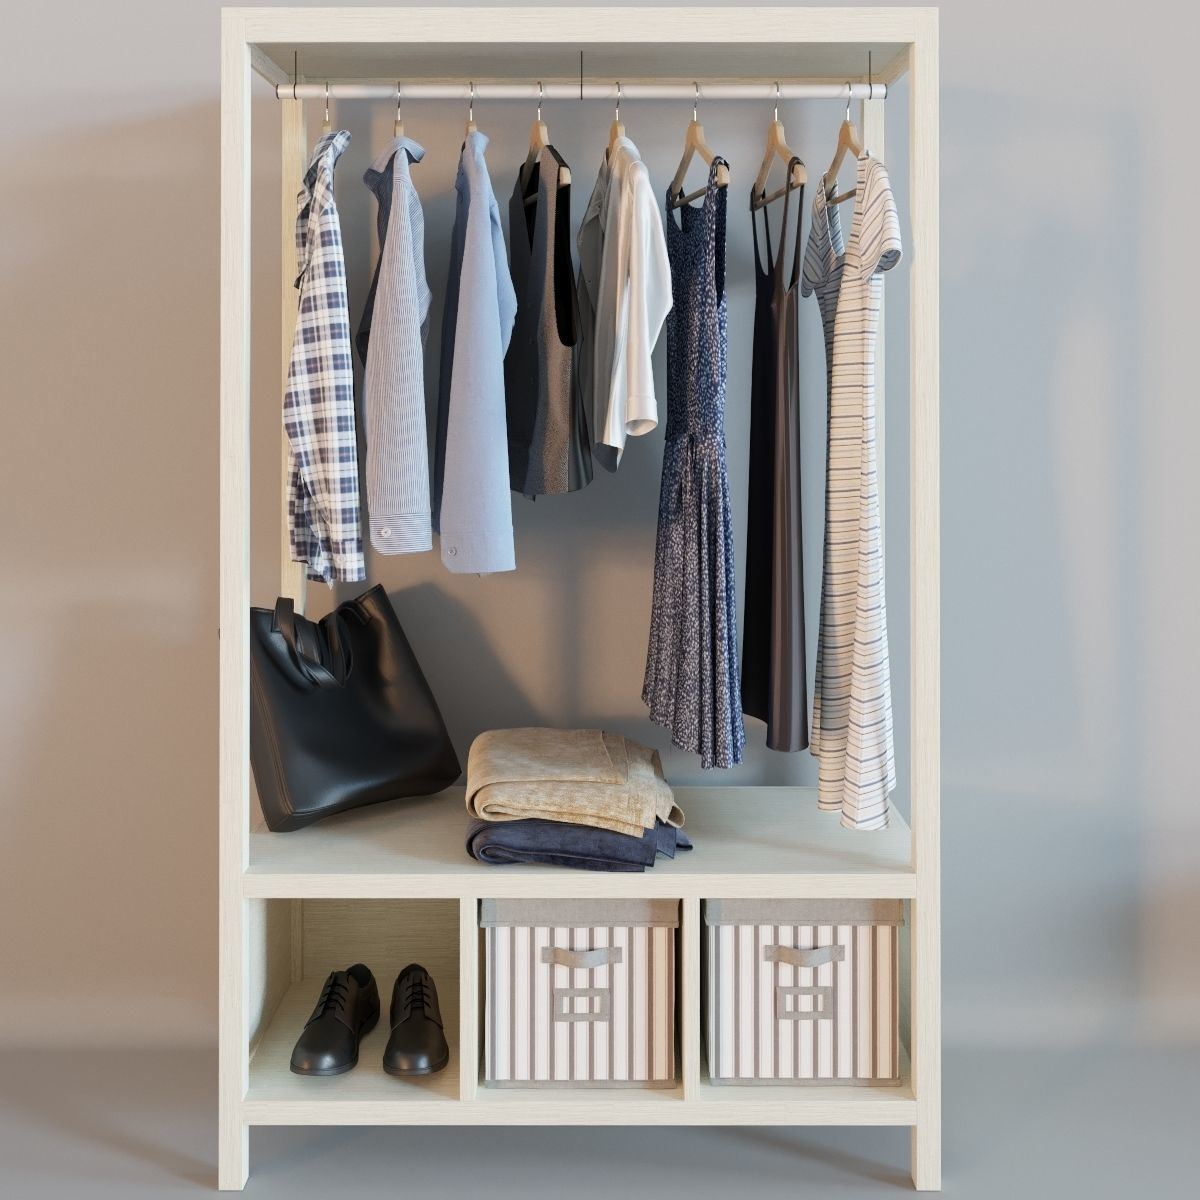 Stunning Open Wardrobe Gallery Best Image Engine 2articles us